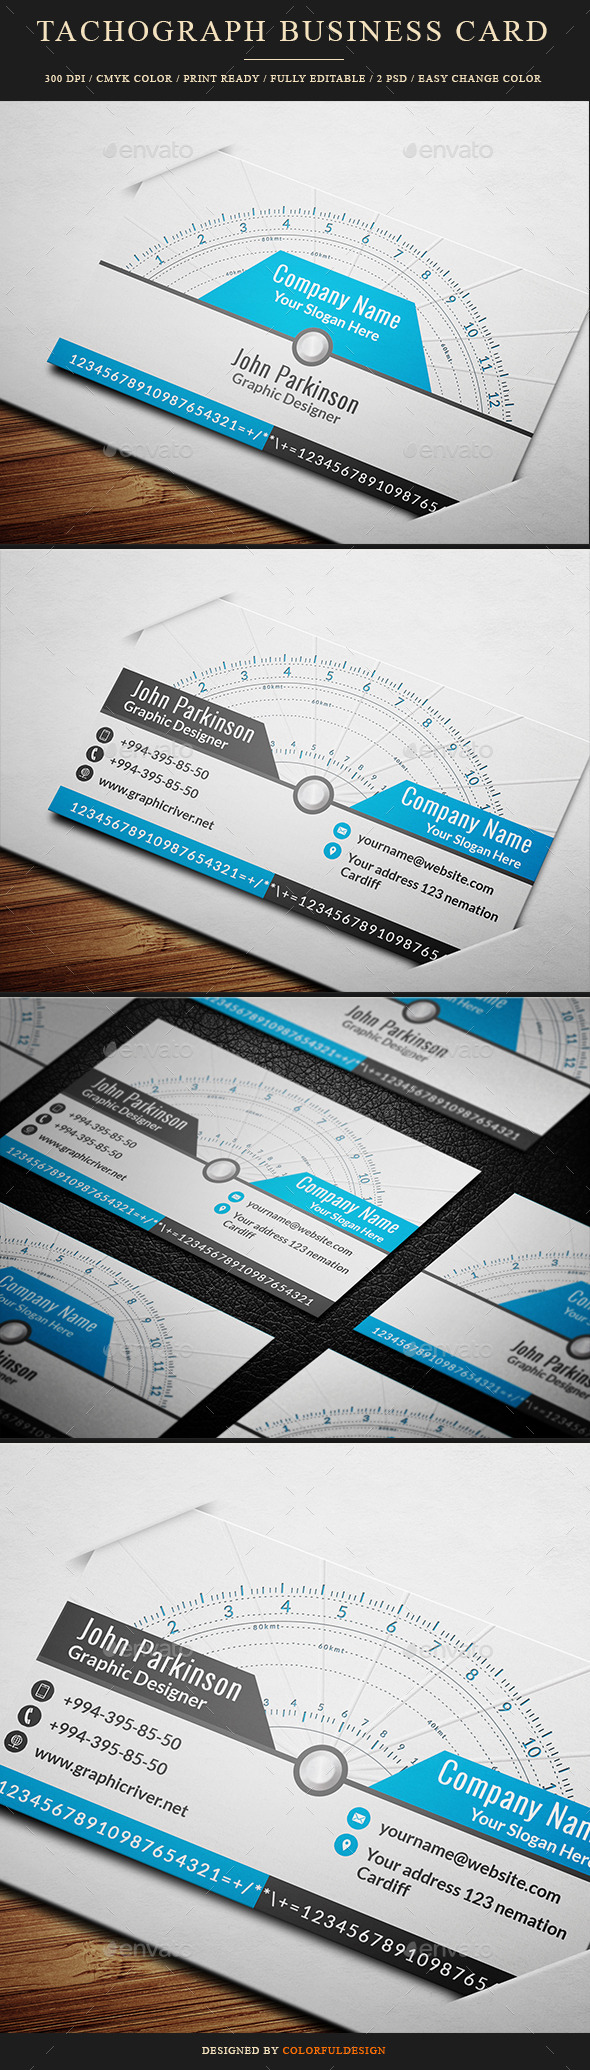 GraphicRiver Tachograph Business Card 10149033